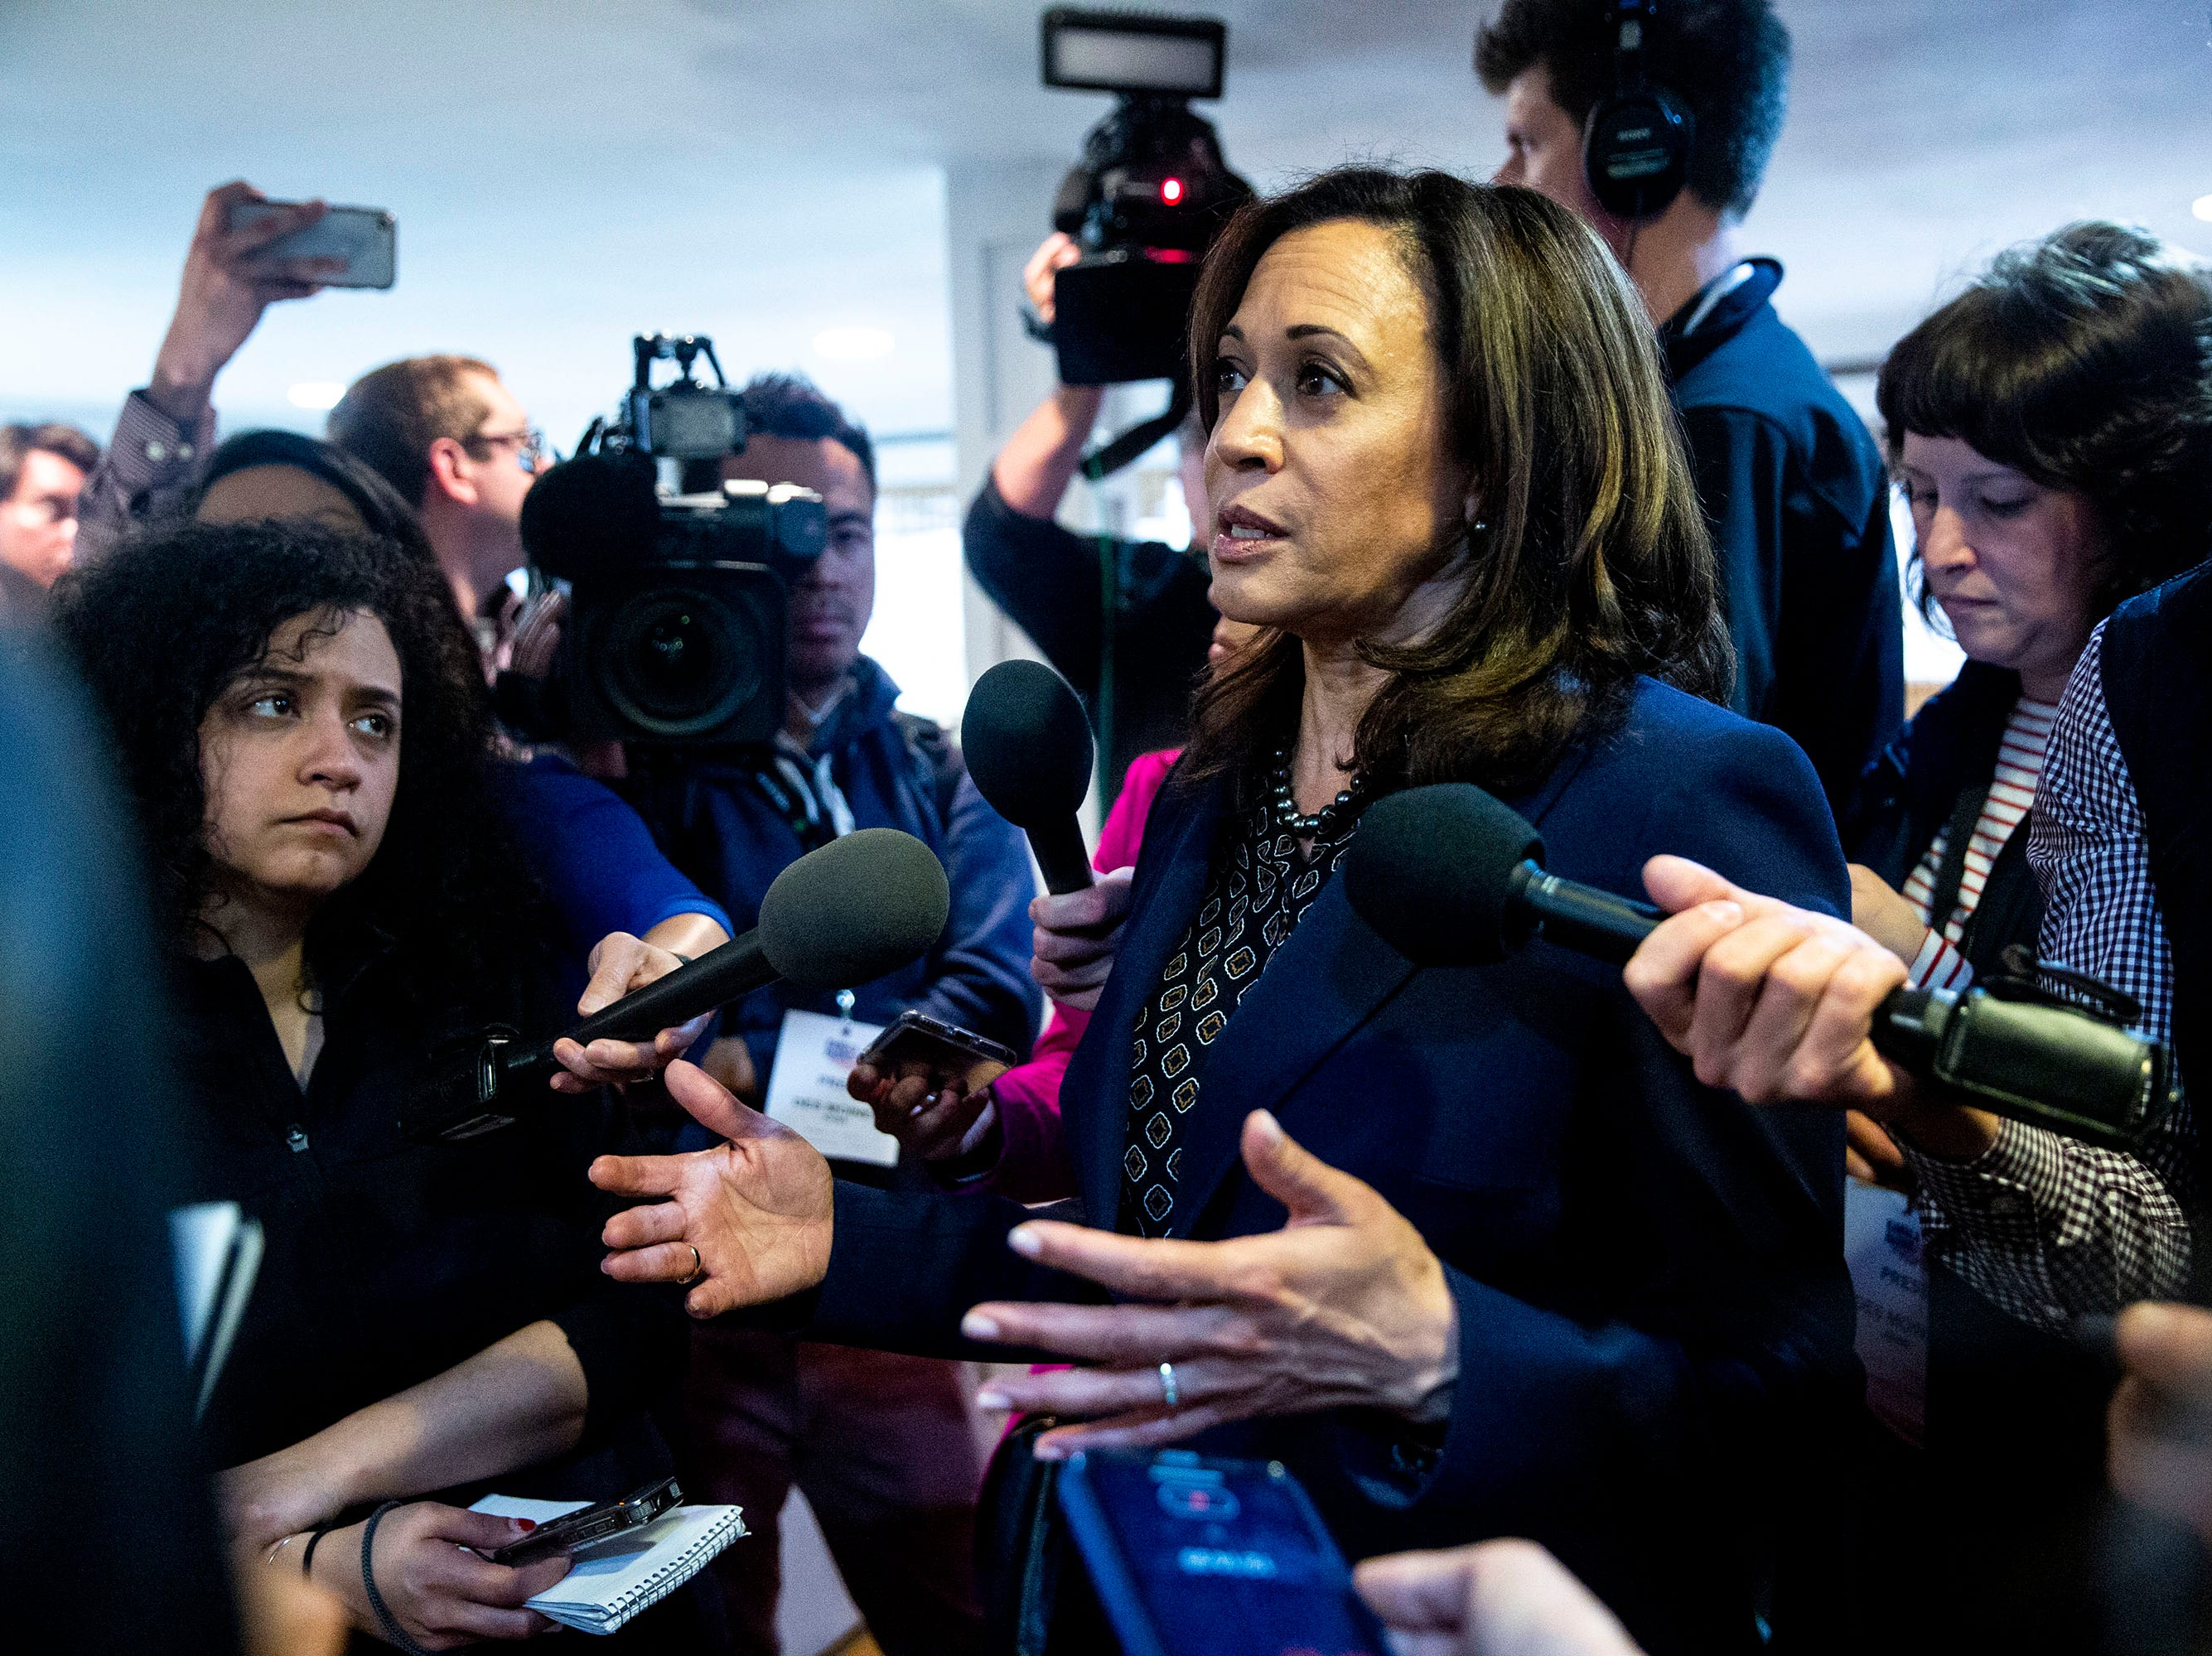 Sen. Kamala Harris, D-CA, answers questions from the press after speaking at a house party on Thursday, April 11, 2019, in Des Moines.